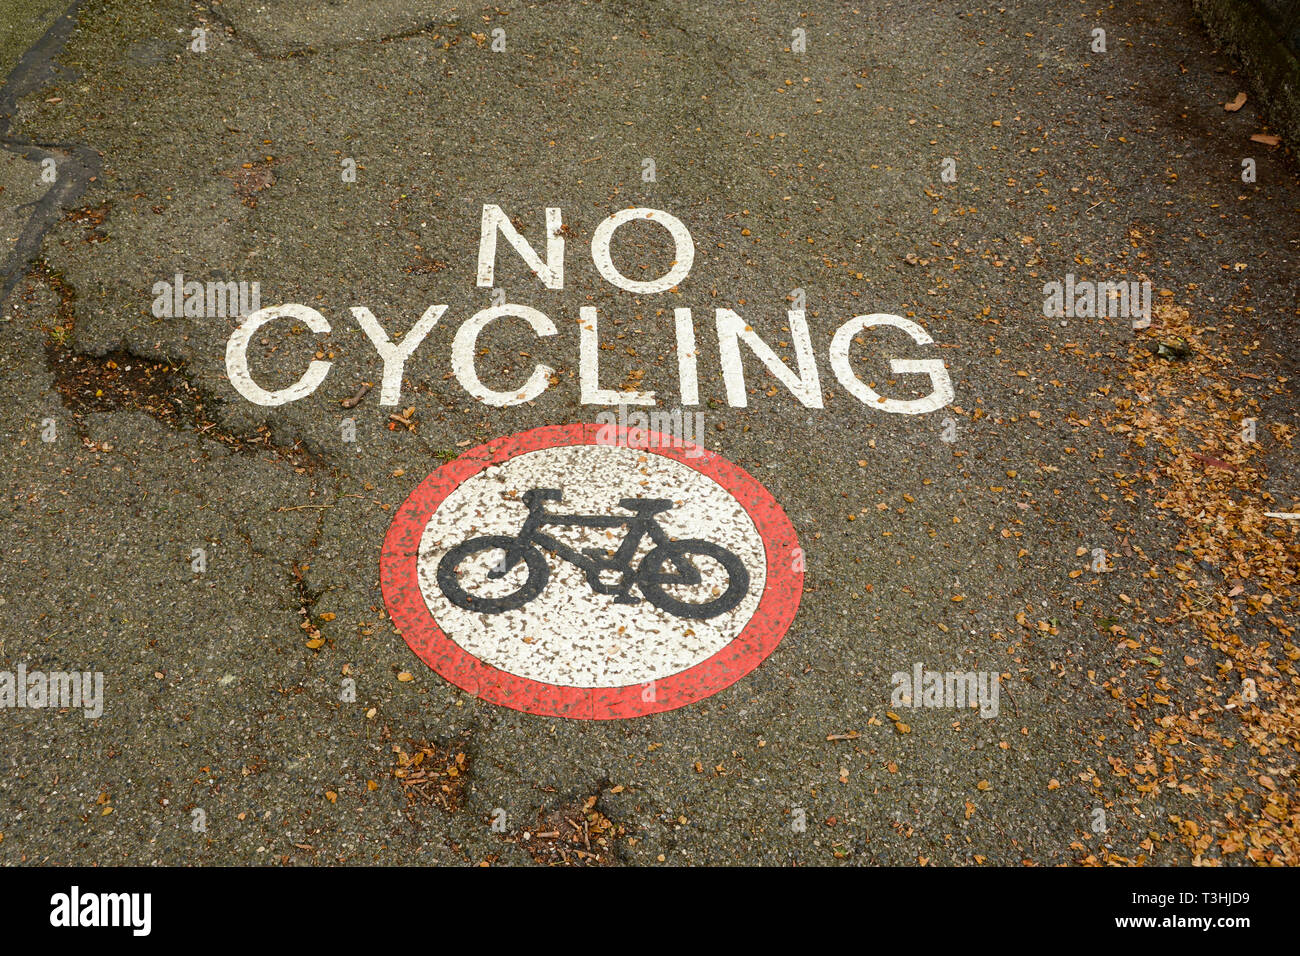 A Highway Code no cycling sign on a pavement in London, UK - Stock Image